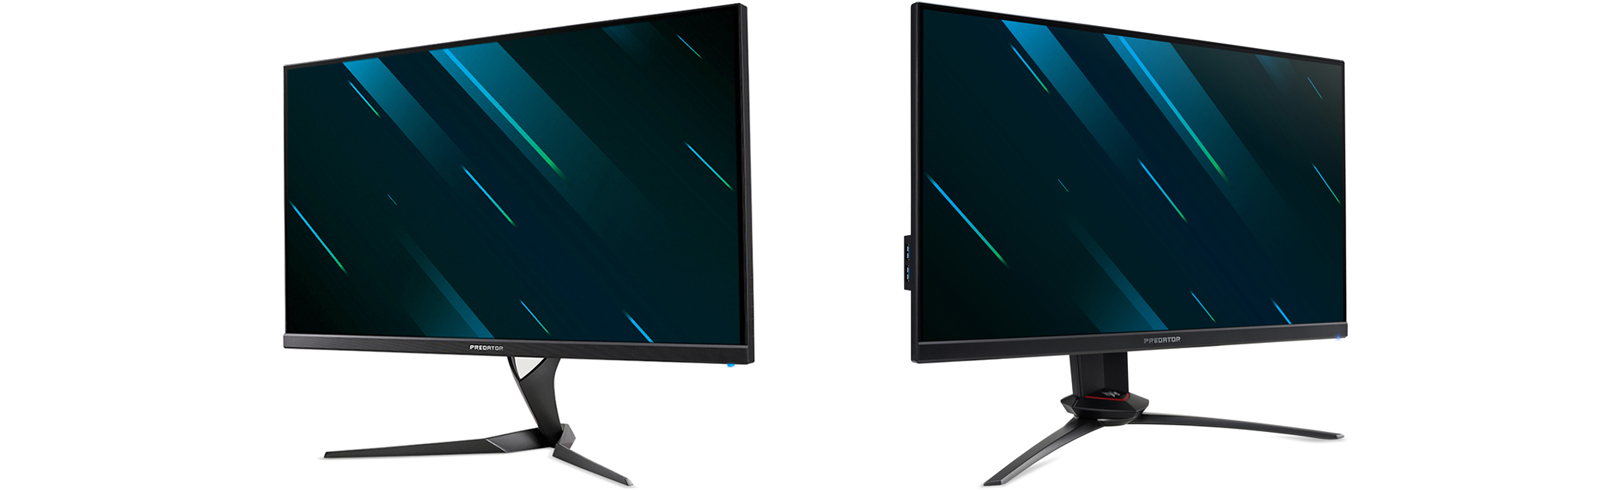 Acer Predator XB323K and Acer Predator XB283K listed by Chinese retailers, go on sale in November